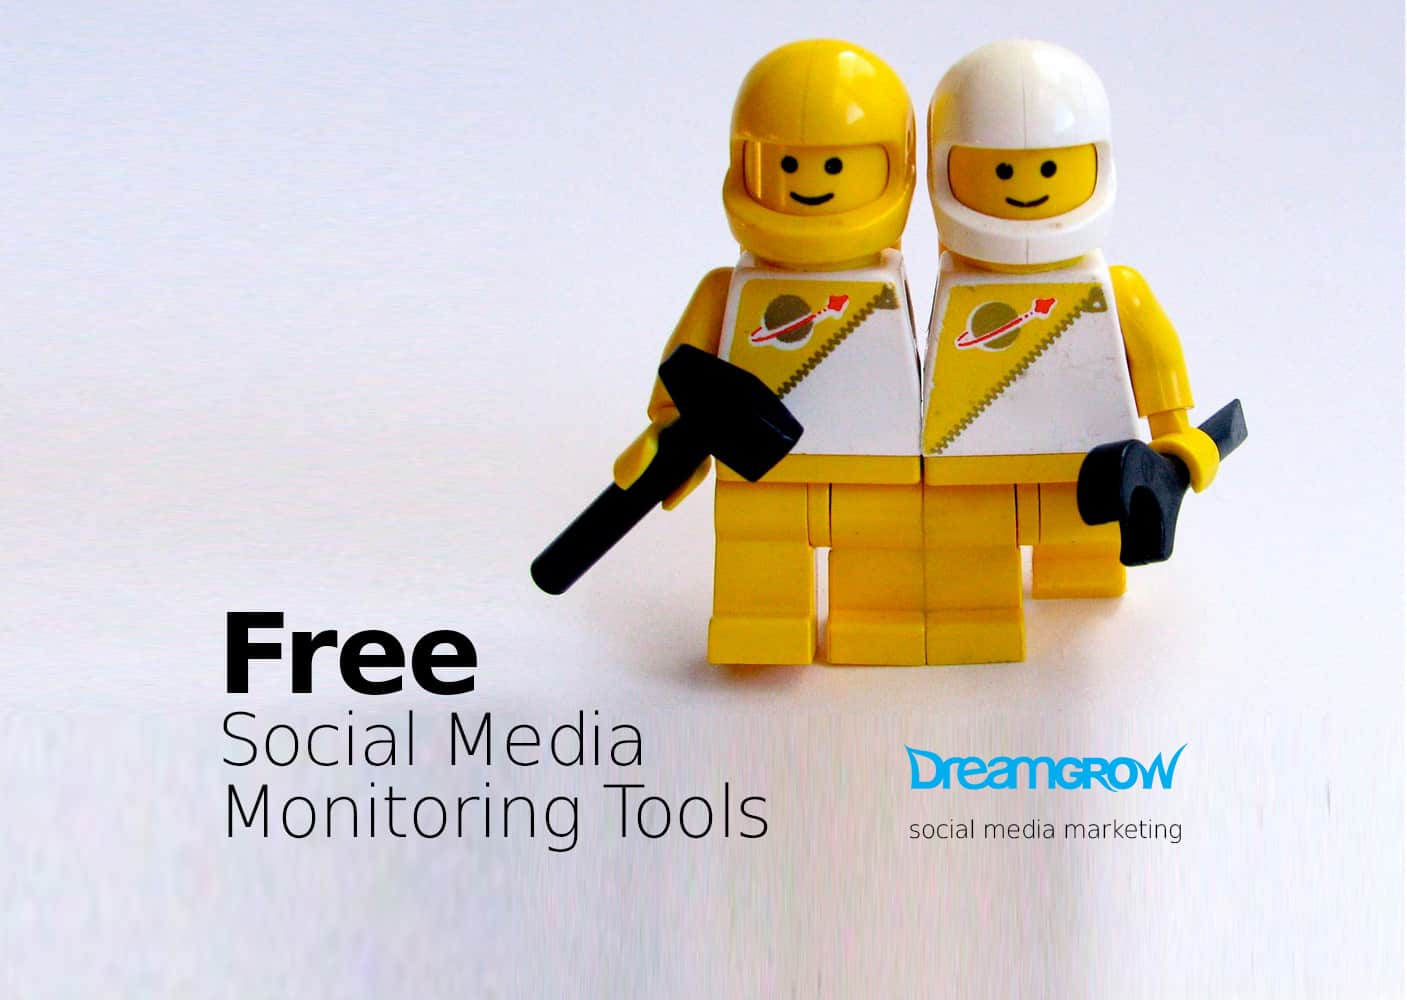 48 Free Social Media Monitoring Tools to Improve Your Results @DreamGrow 2018